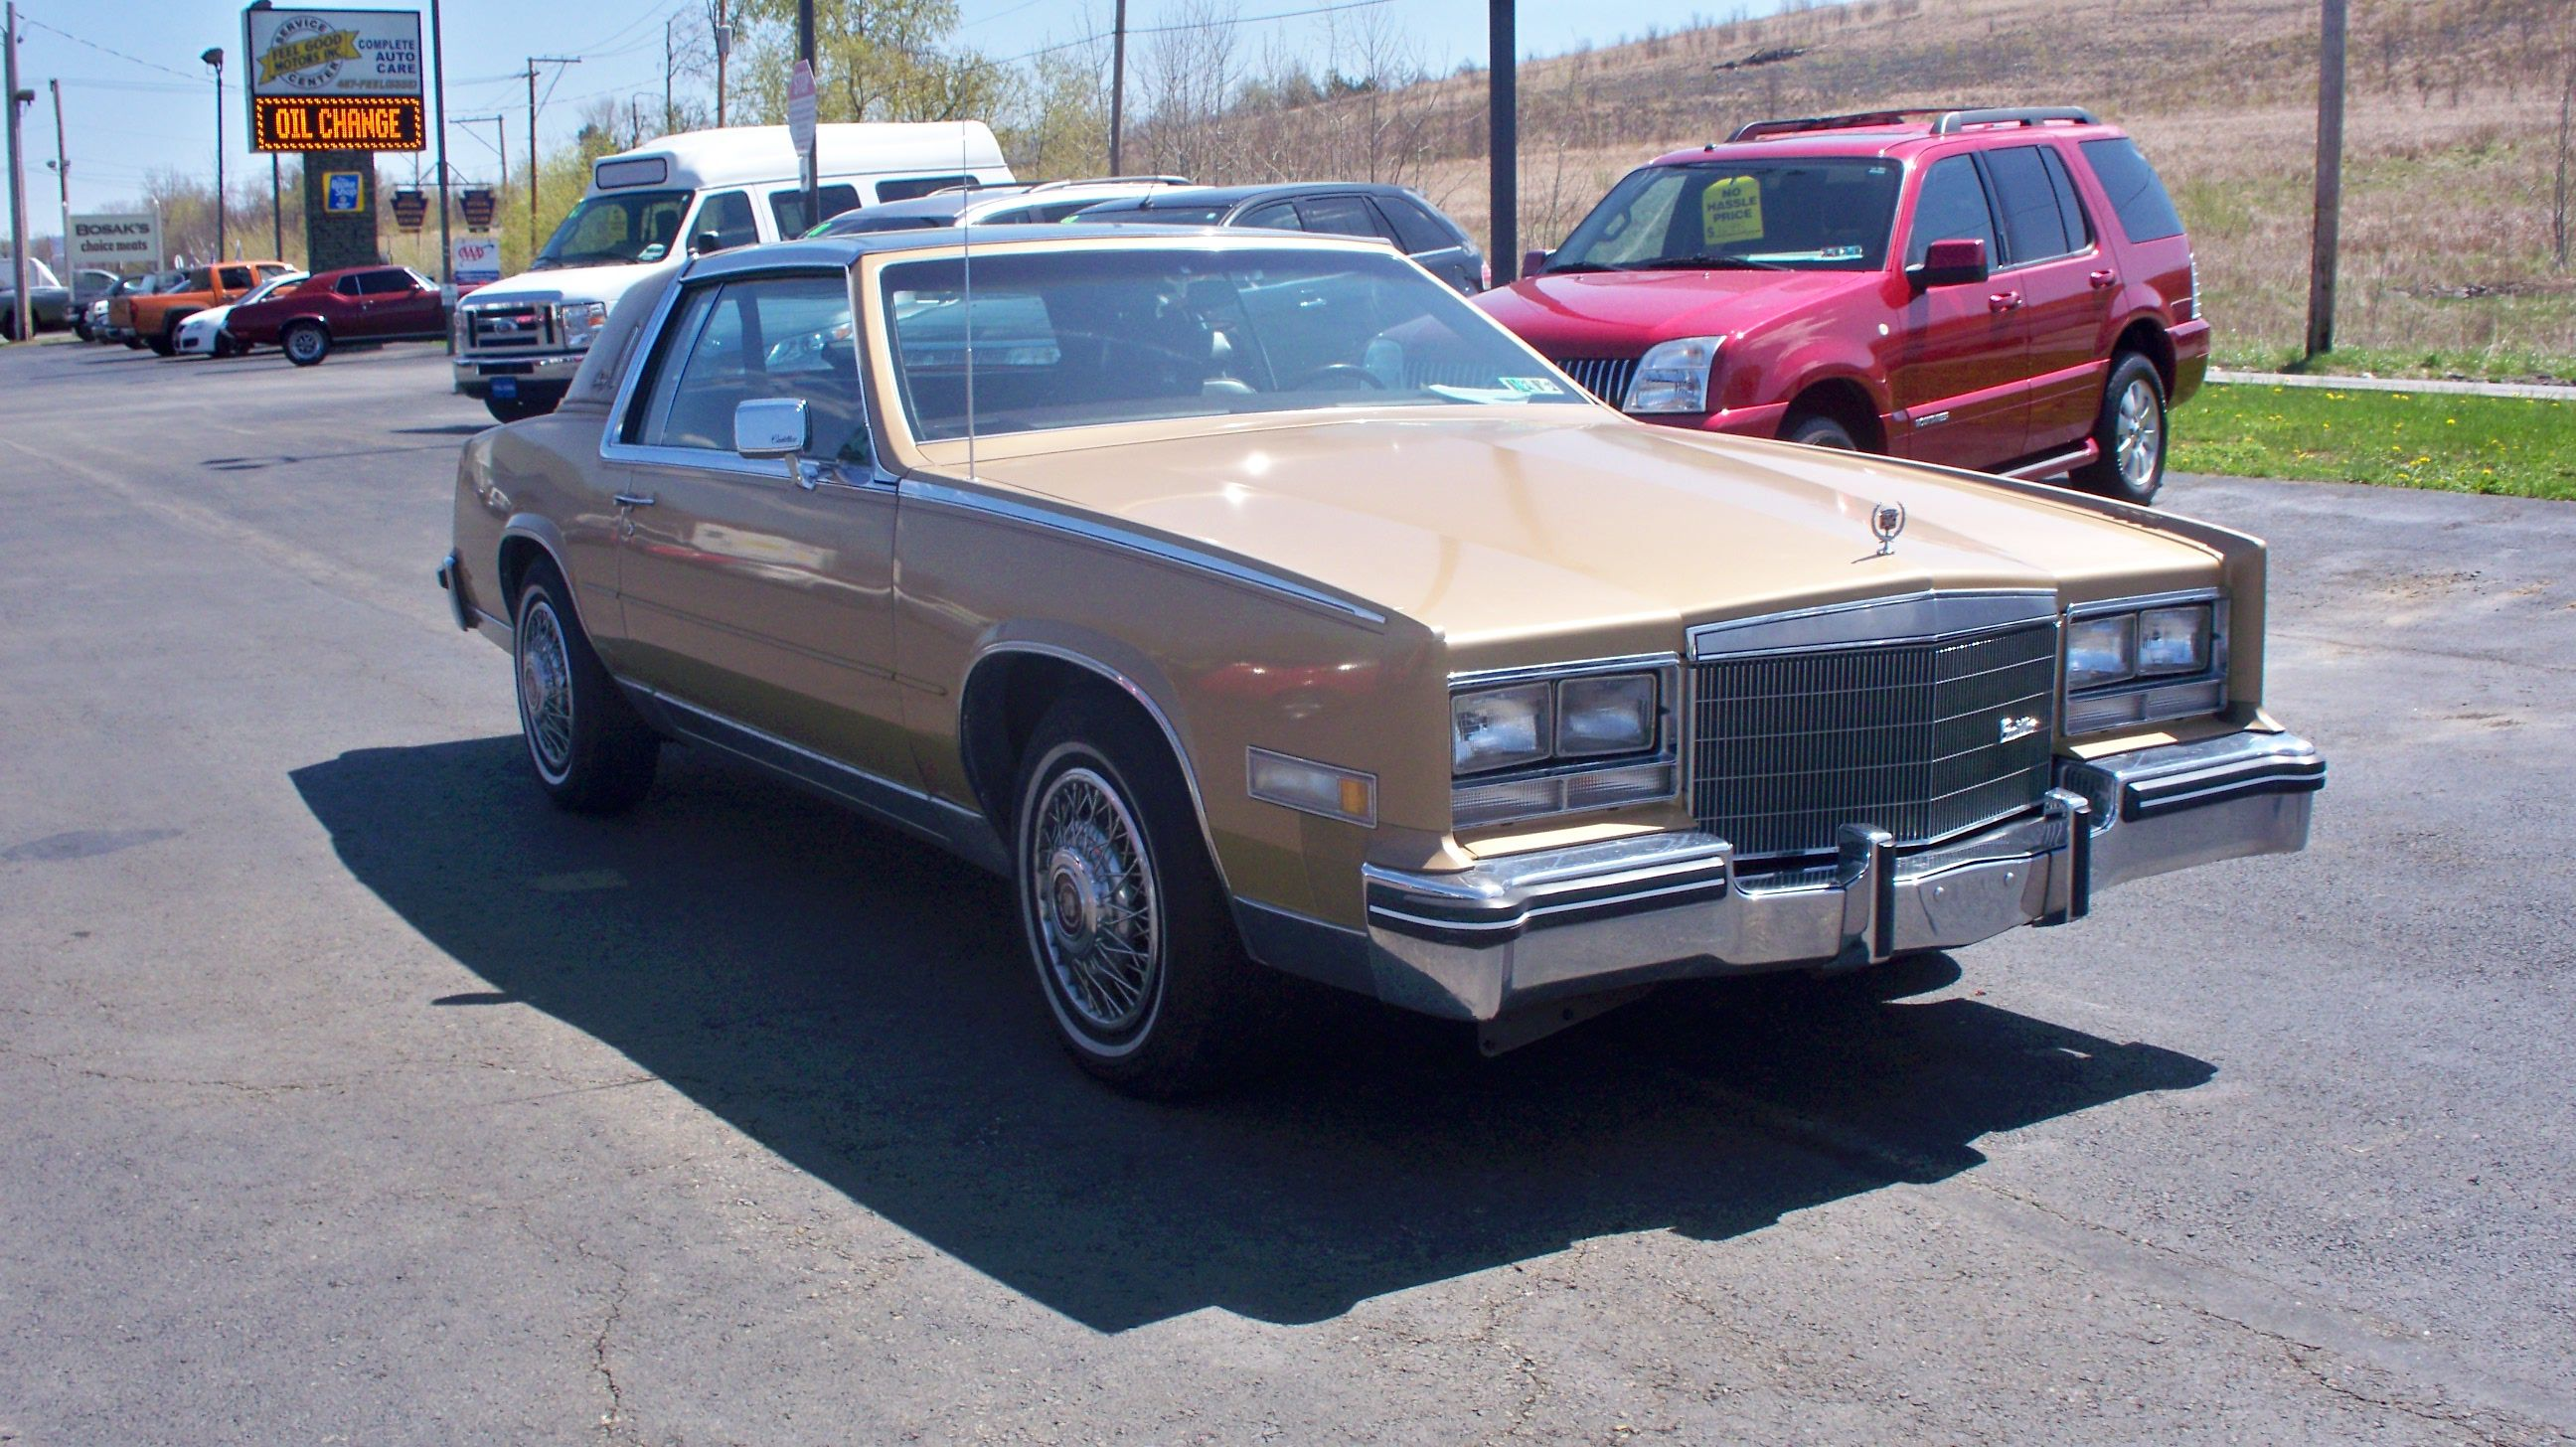 85 Cadillac El Dorado Mine was Midnight blue I had a serious love